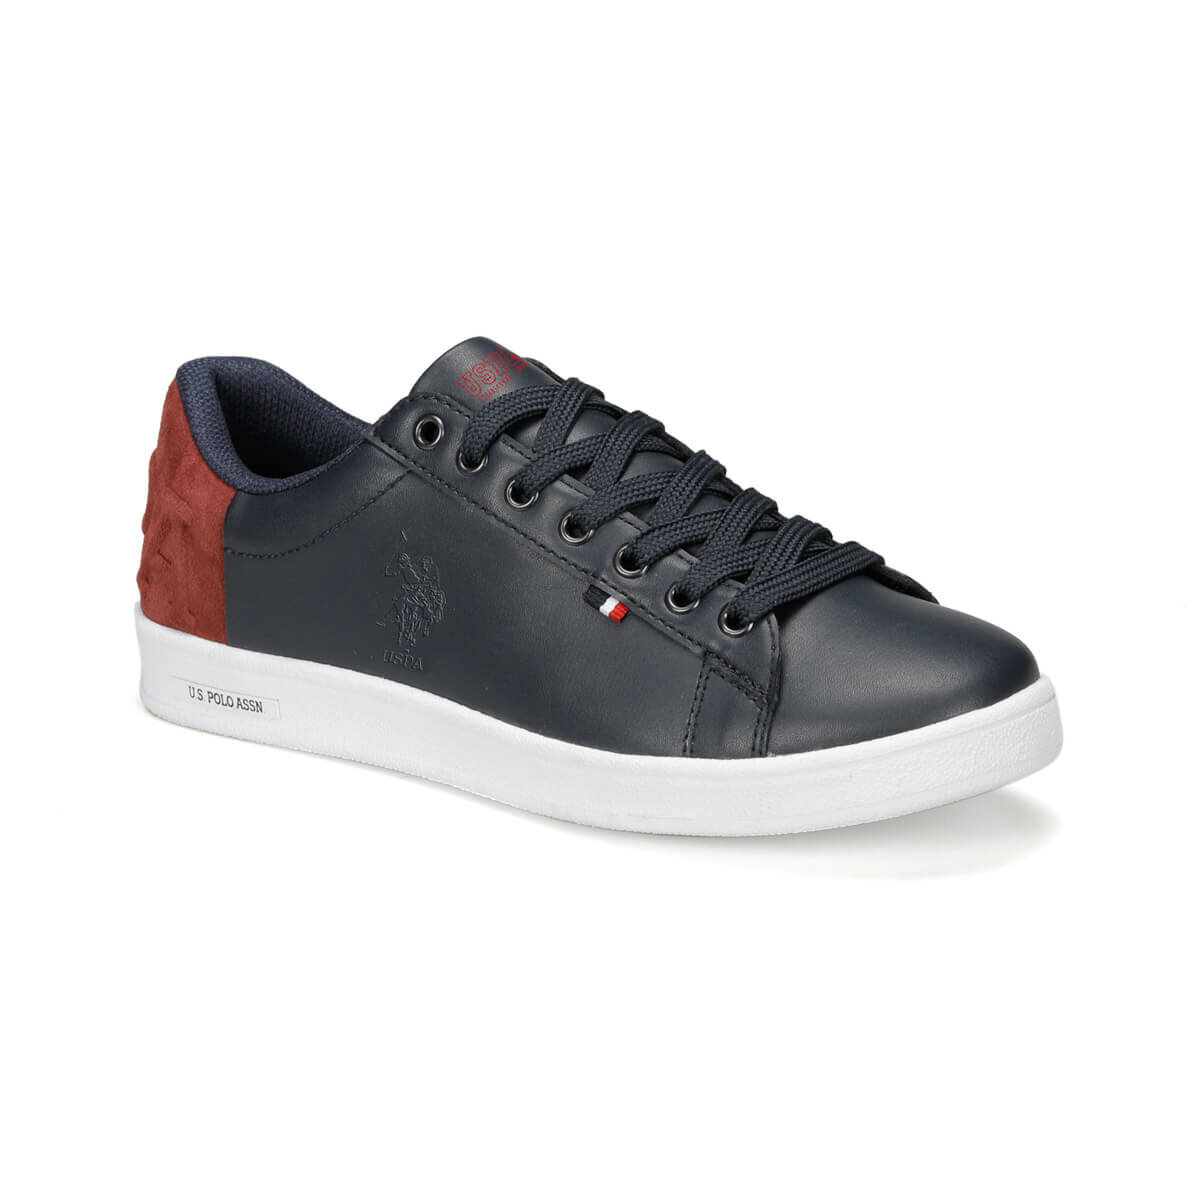 FLO PEDRO 9PR Navy Blue Women 'S Sneaker Shoes U.S. POLO ASSN.